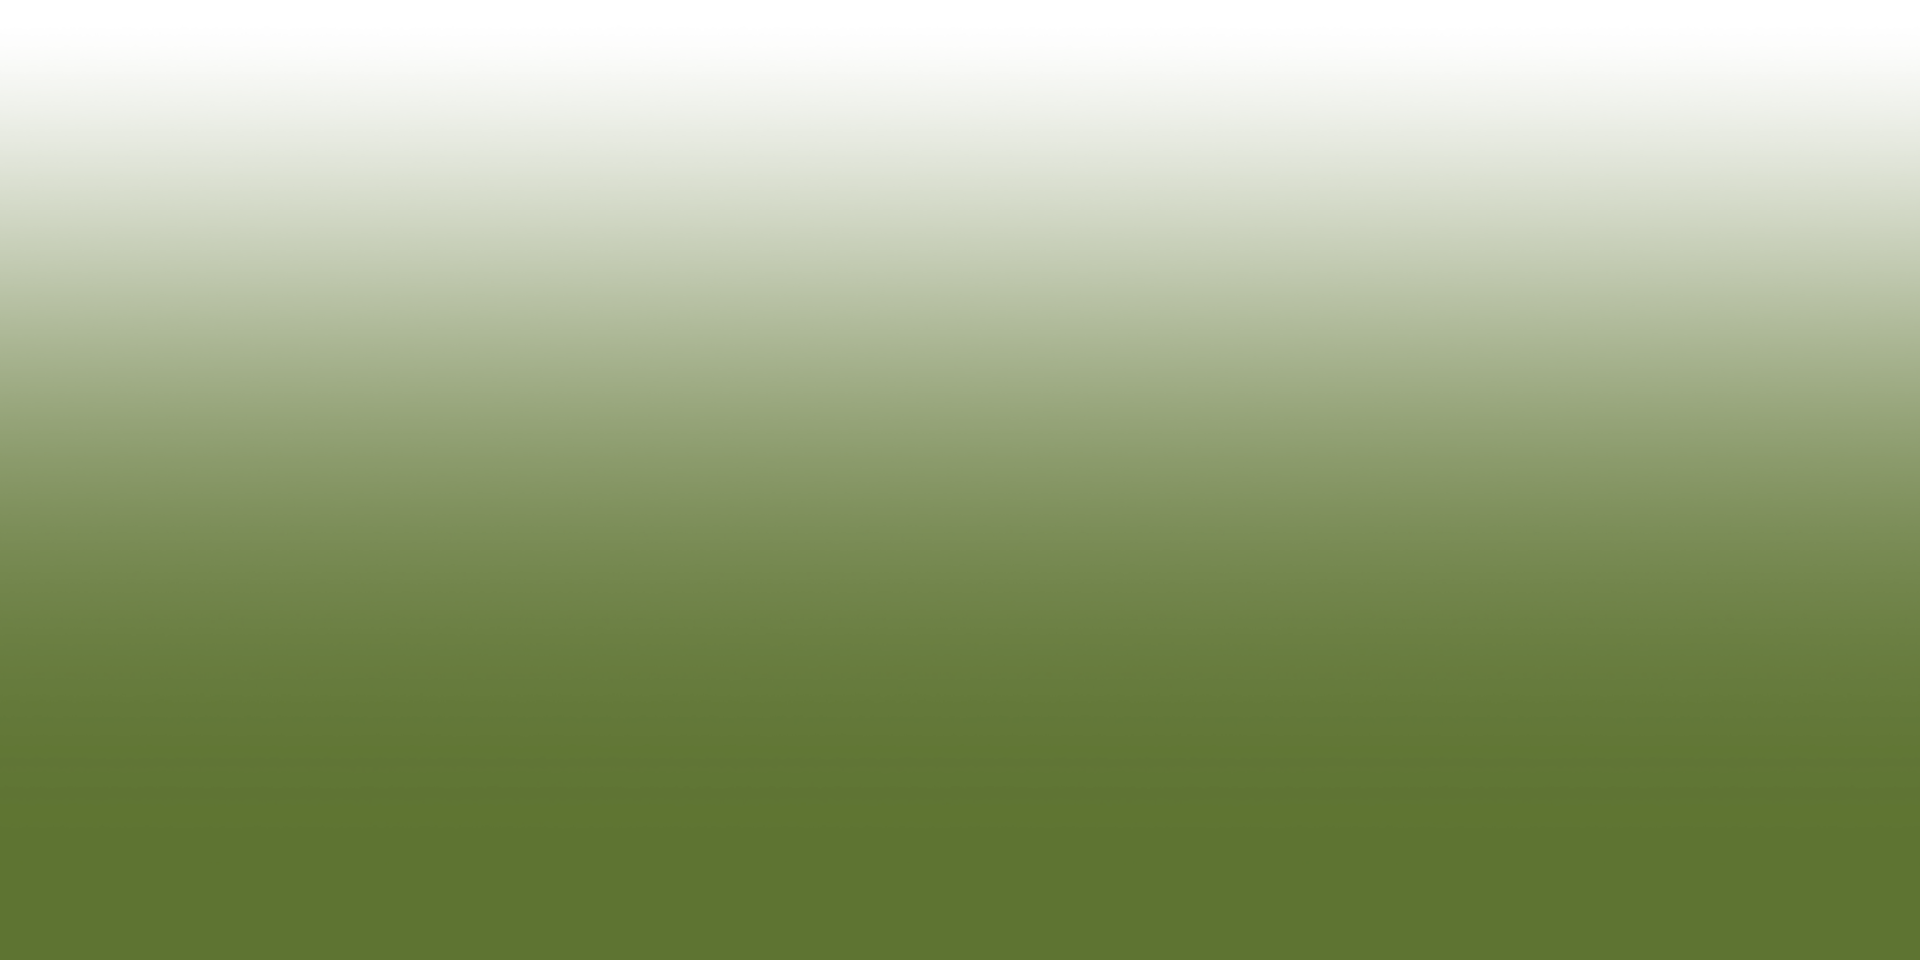 Green_Gradient.png